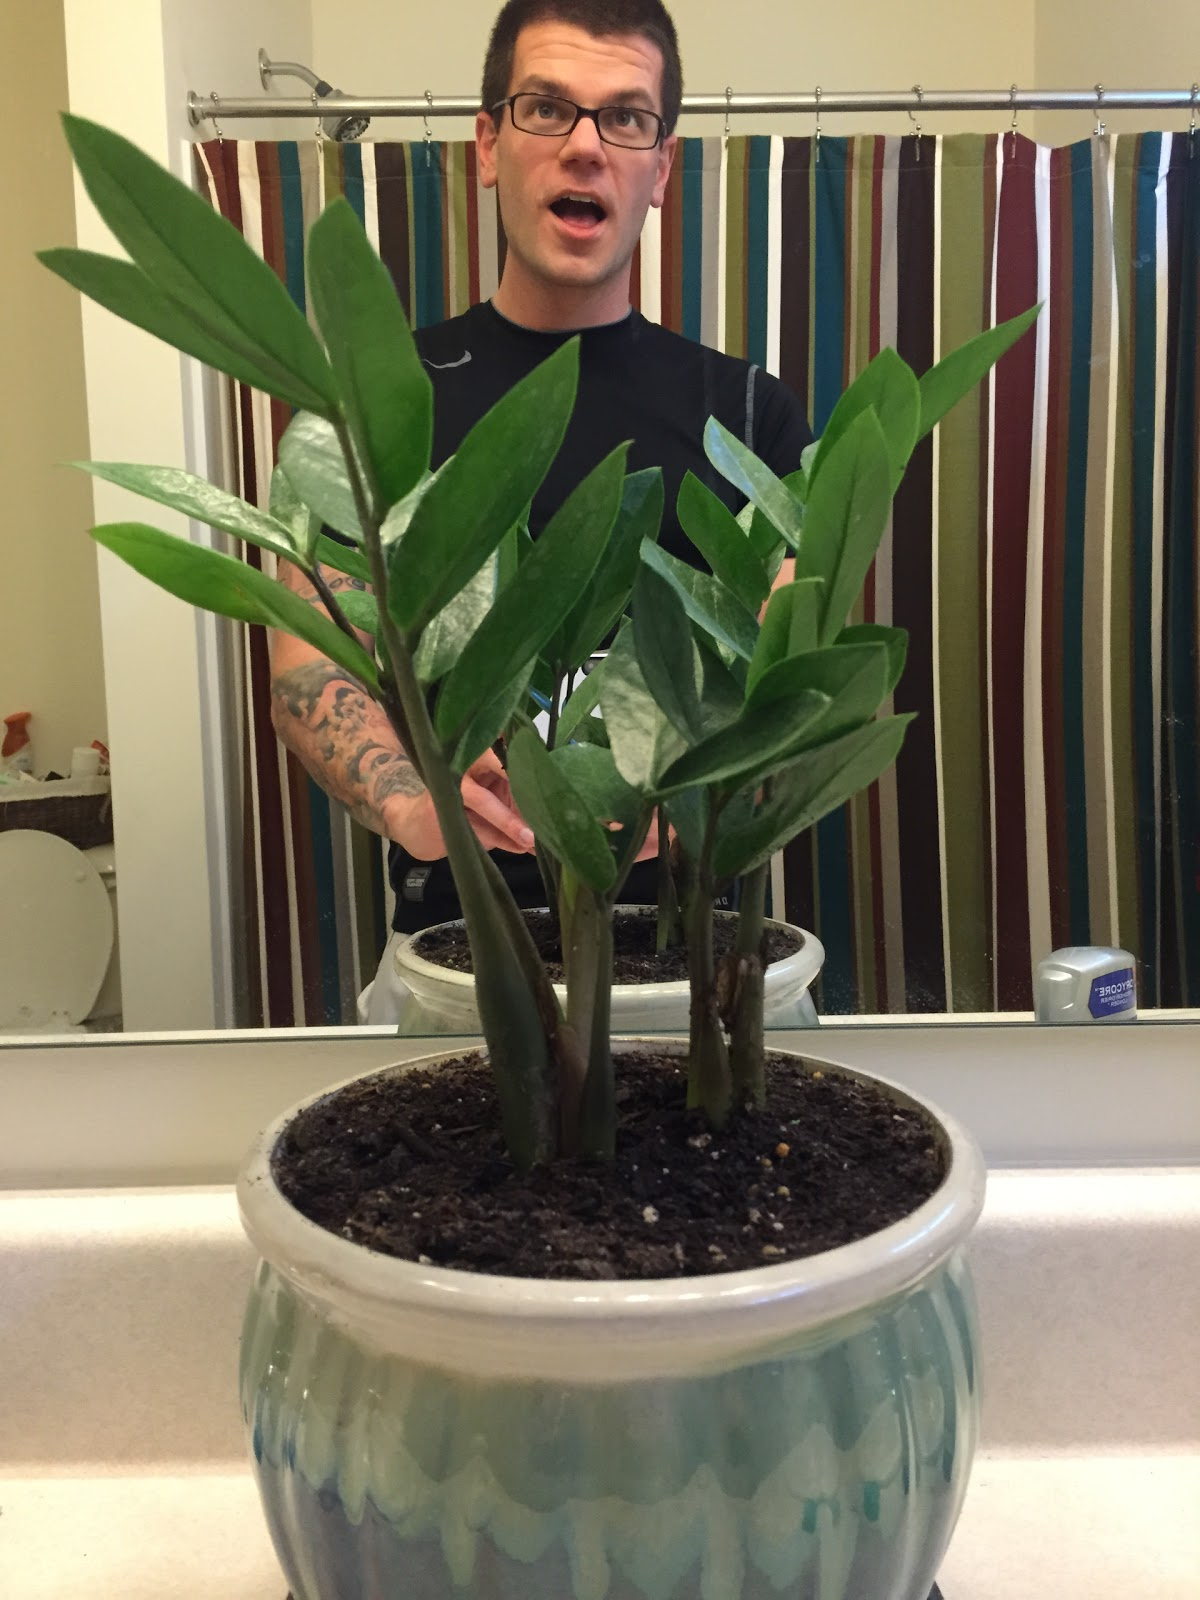 zz plant in bathroom